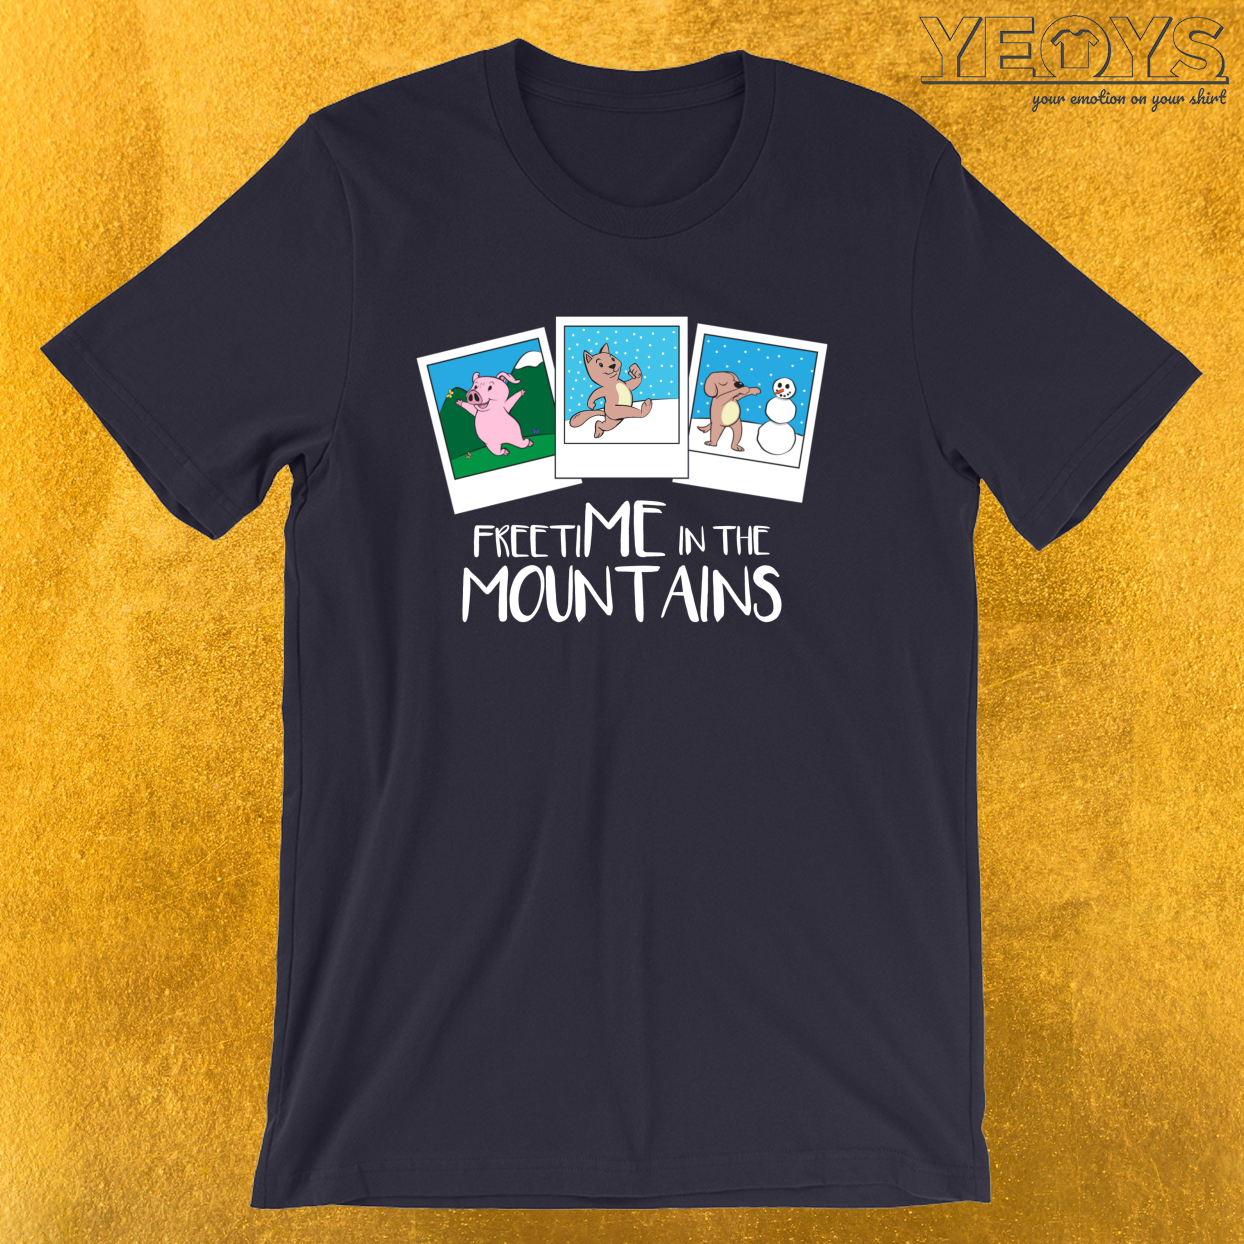 Freetime In The Mountains – Funny Mountain Quotes Tee